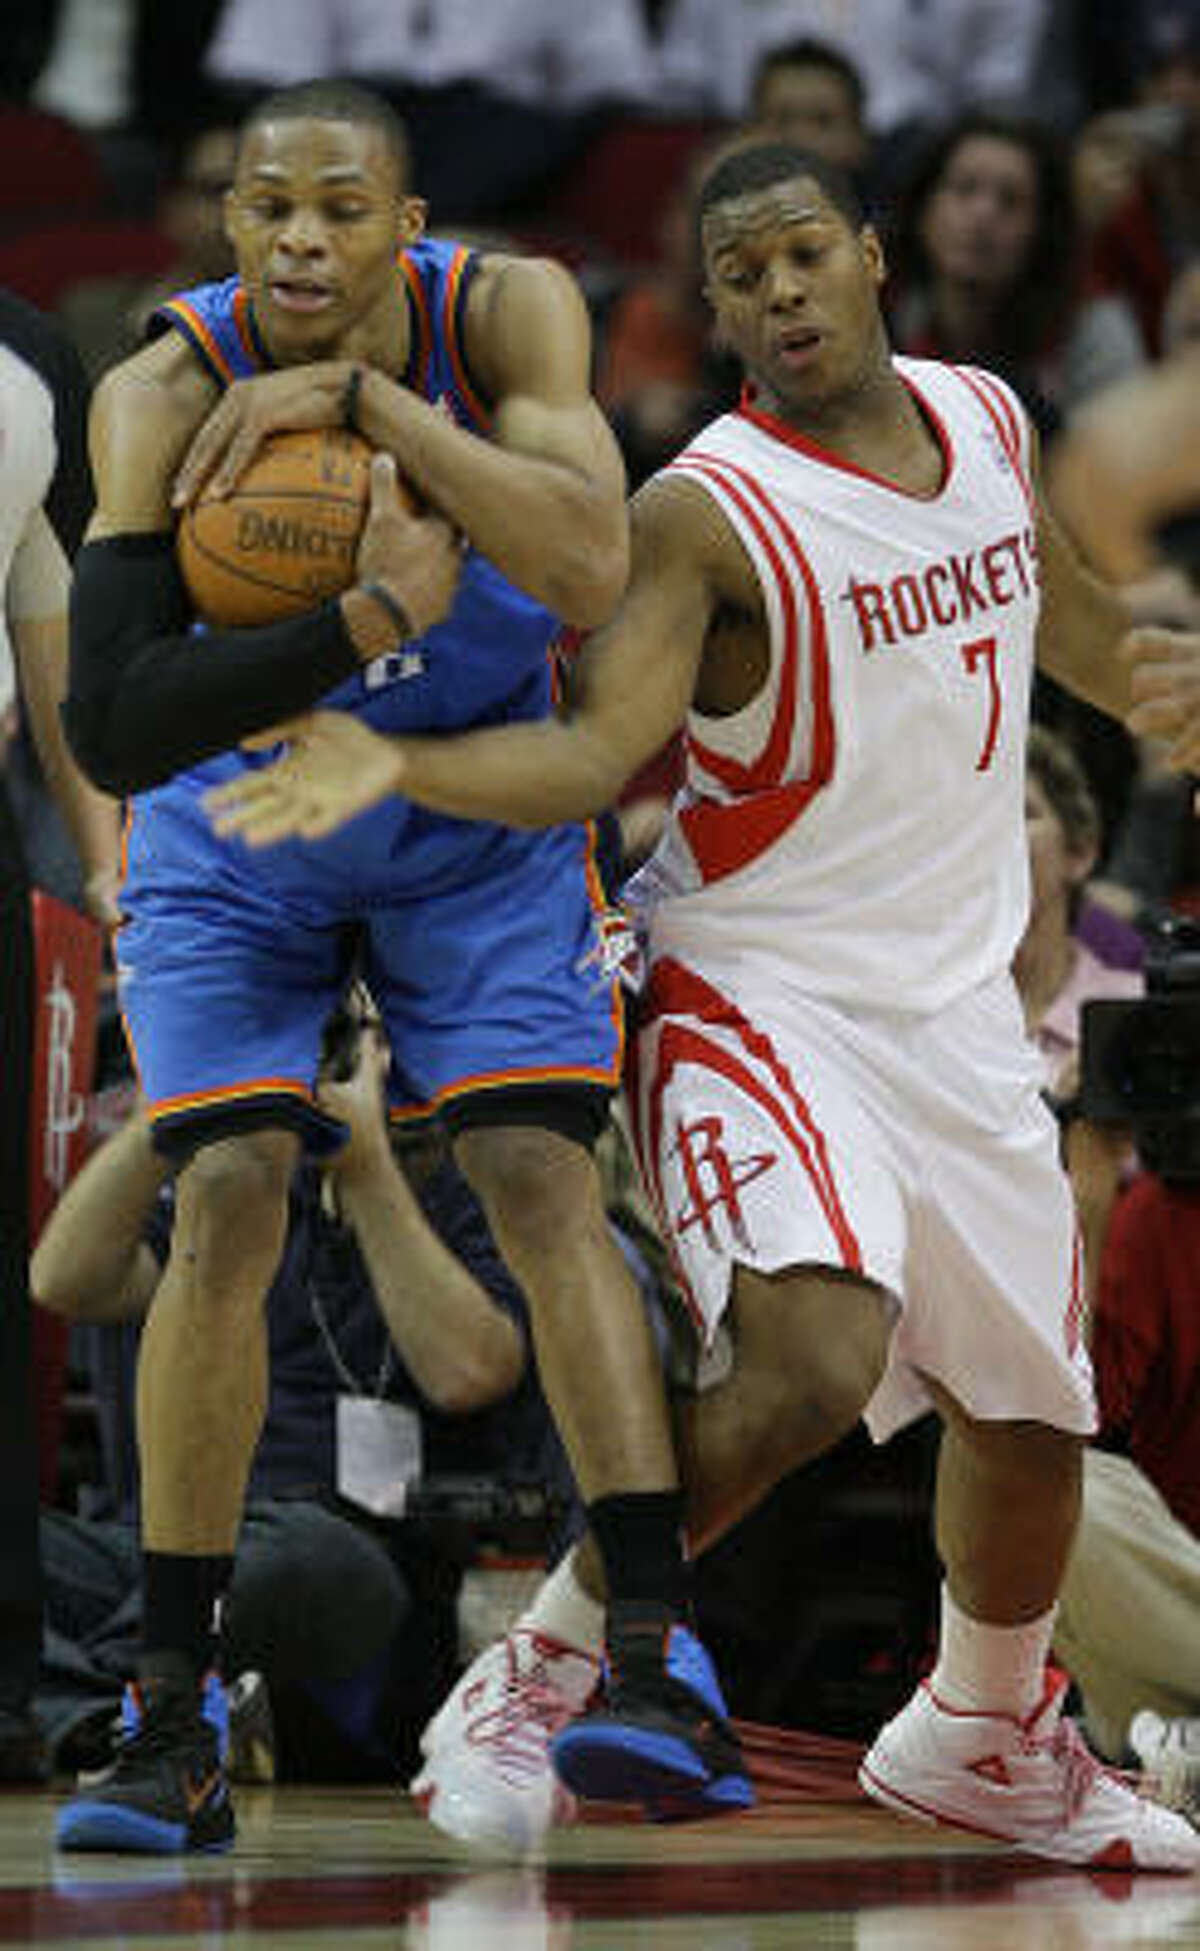 Thunder guard Russell Westbrook secures a rebound from the reach of Rockets guard Kyle Lowry during the second half.